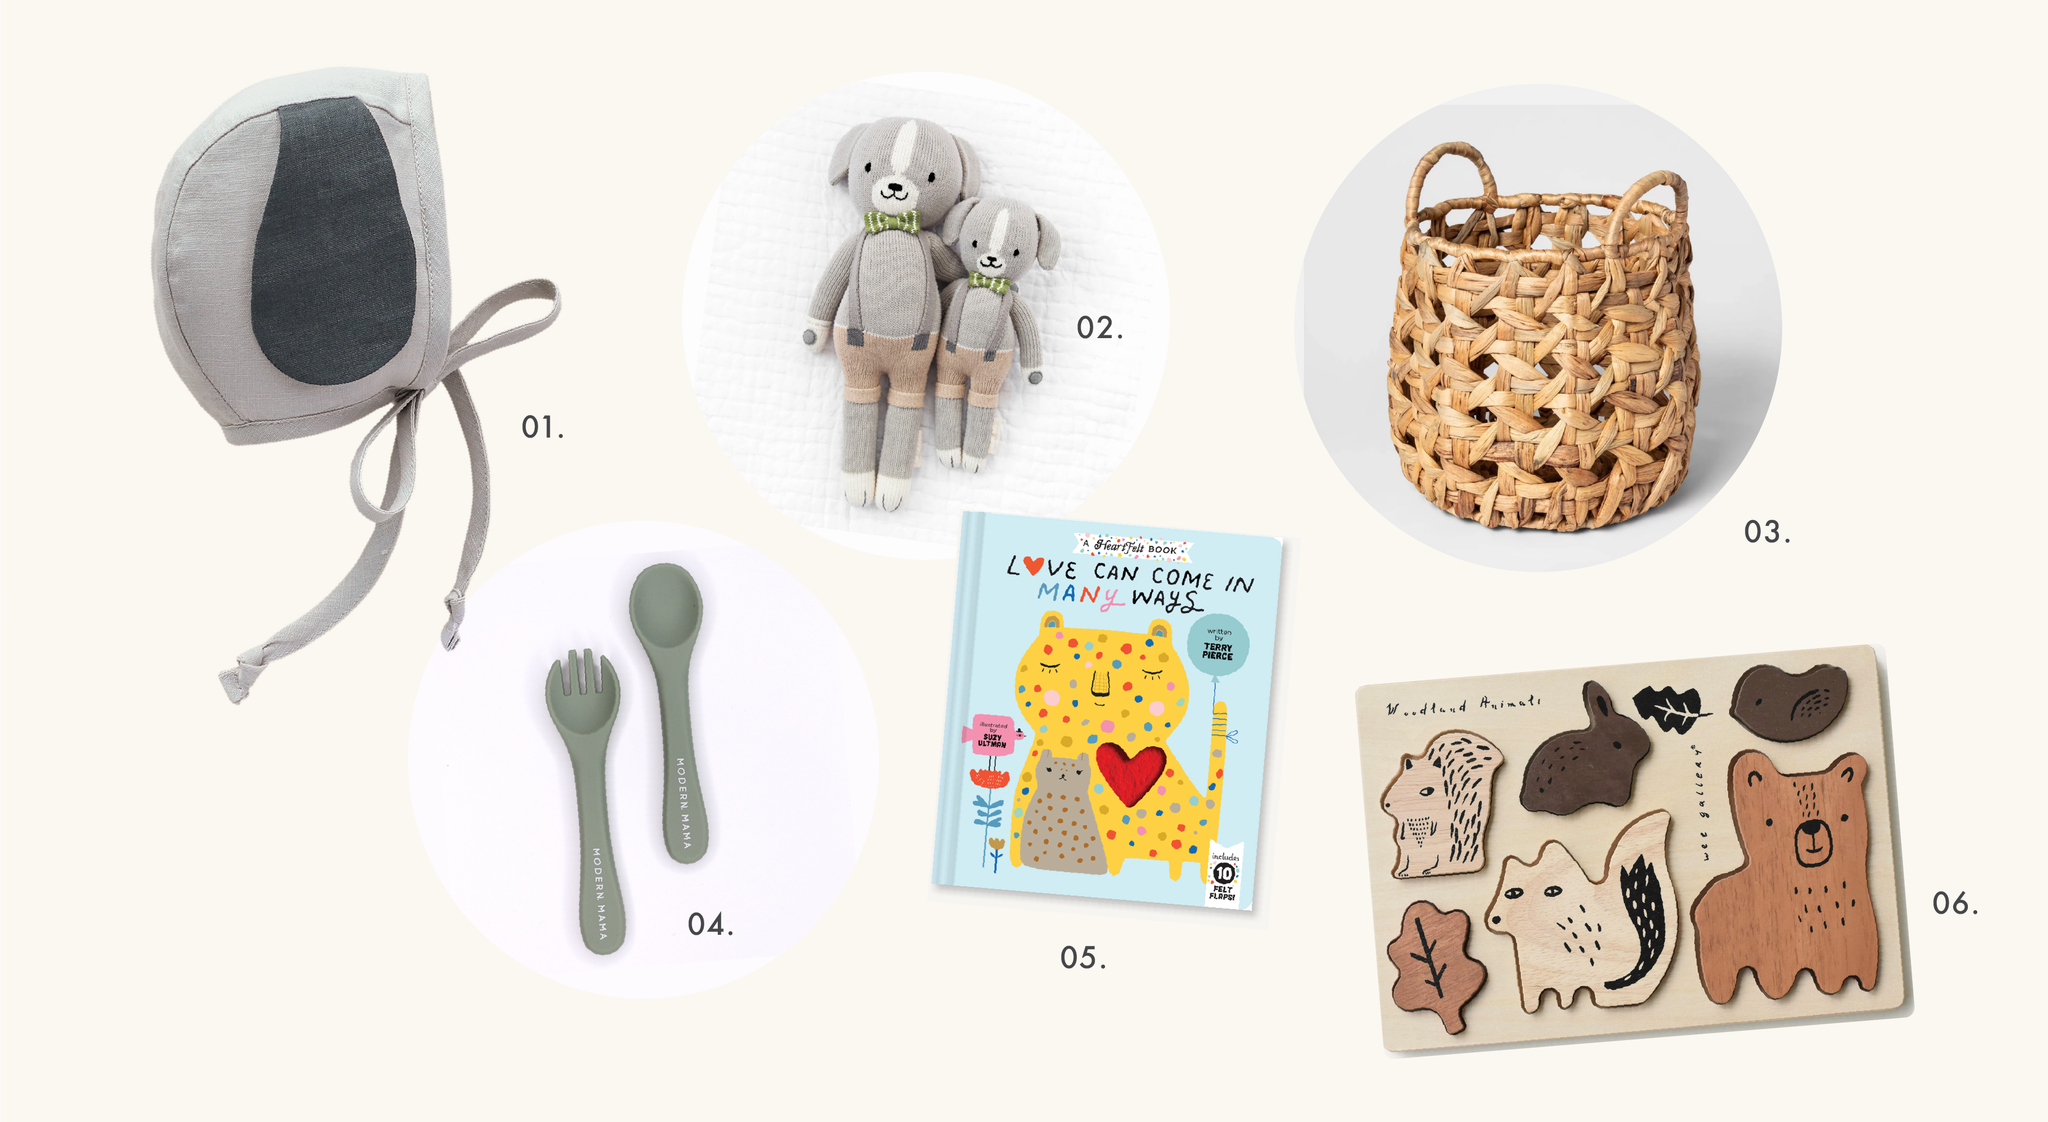 01. Briar Petite Puppy bonnet, 02. Cuddle + Kind Noah the Dog, 03. Target Open Weave Basket, 04. Modern Mama Utensil set, 05. Love Can Come in Many Ways book, 06. Wee Gallery Wooden Tray Puzzle